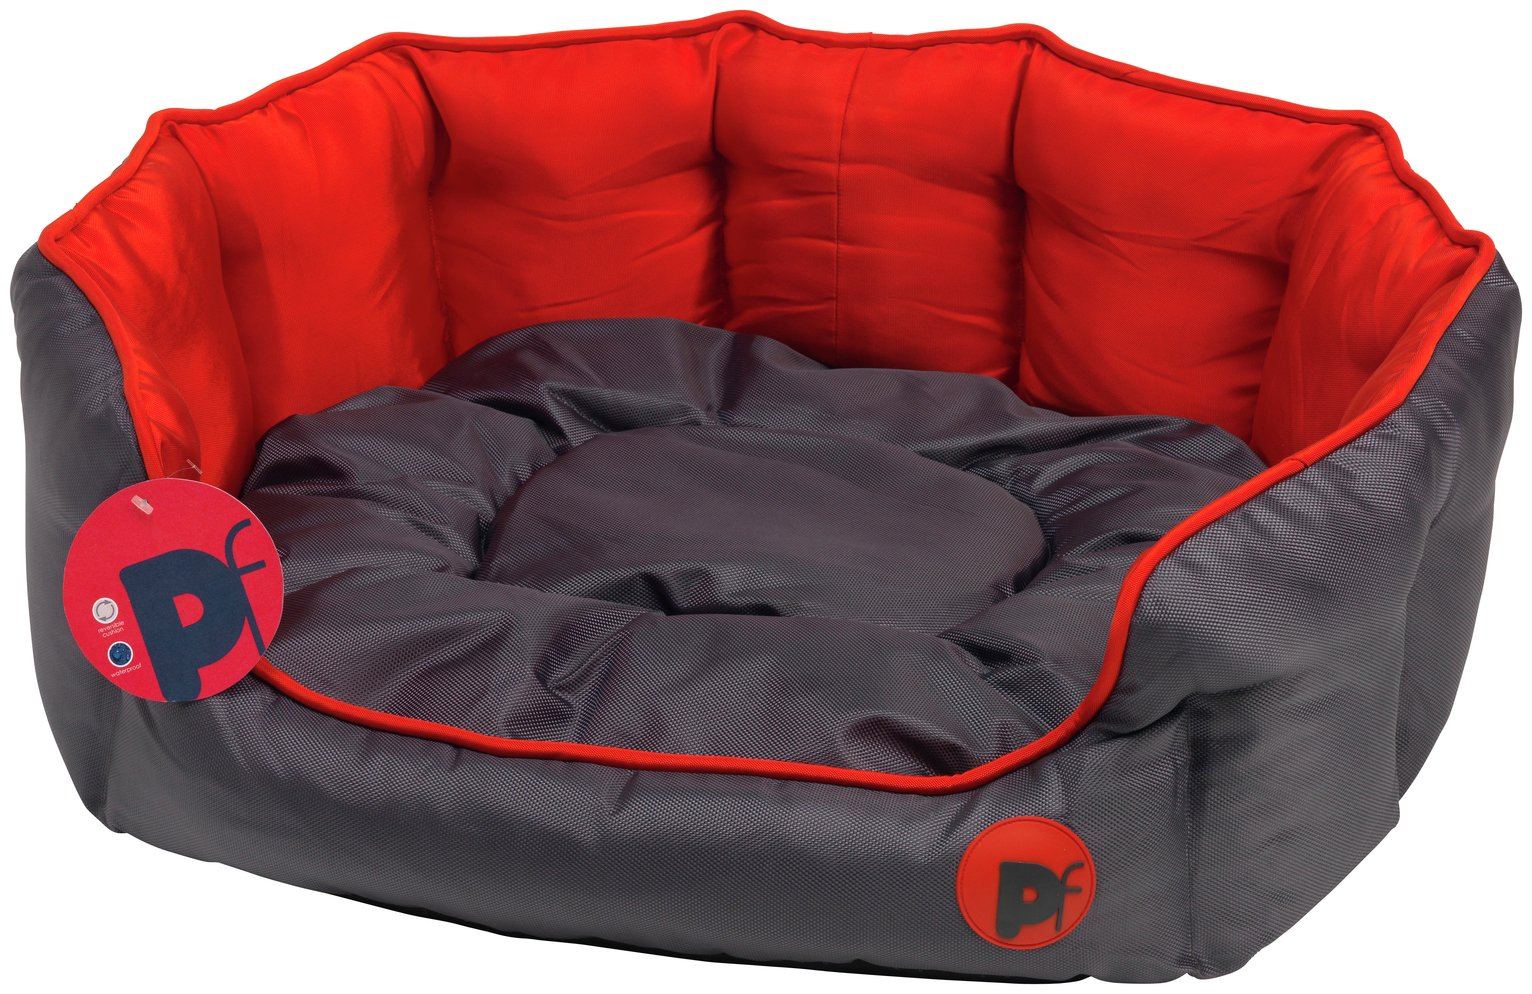 Oxford Oval Red Dog Bed - Large